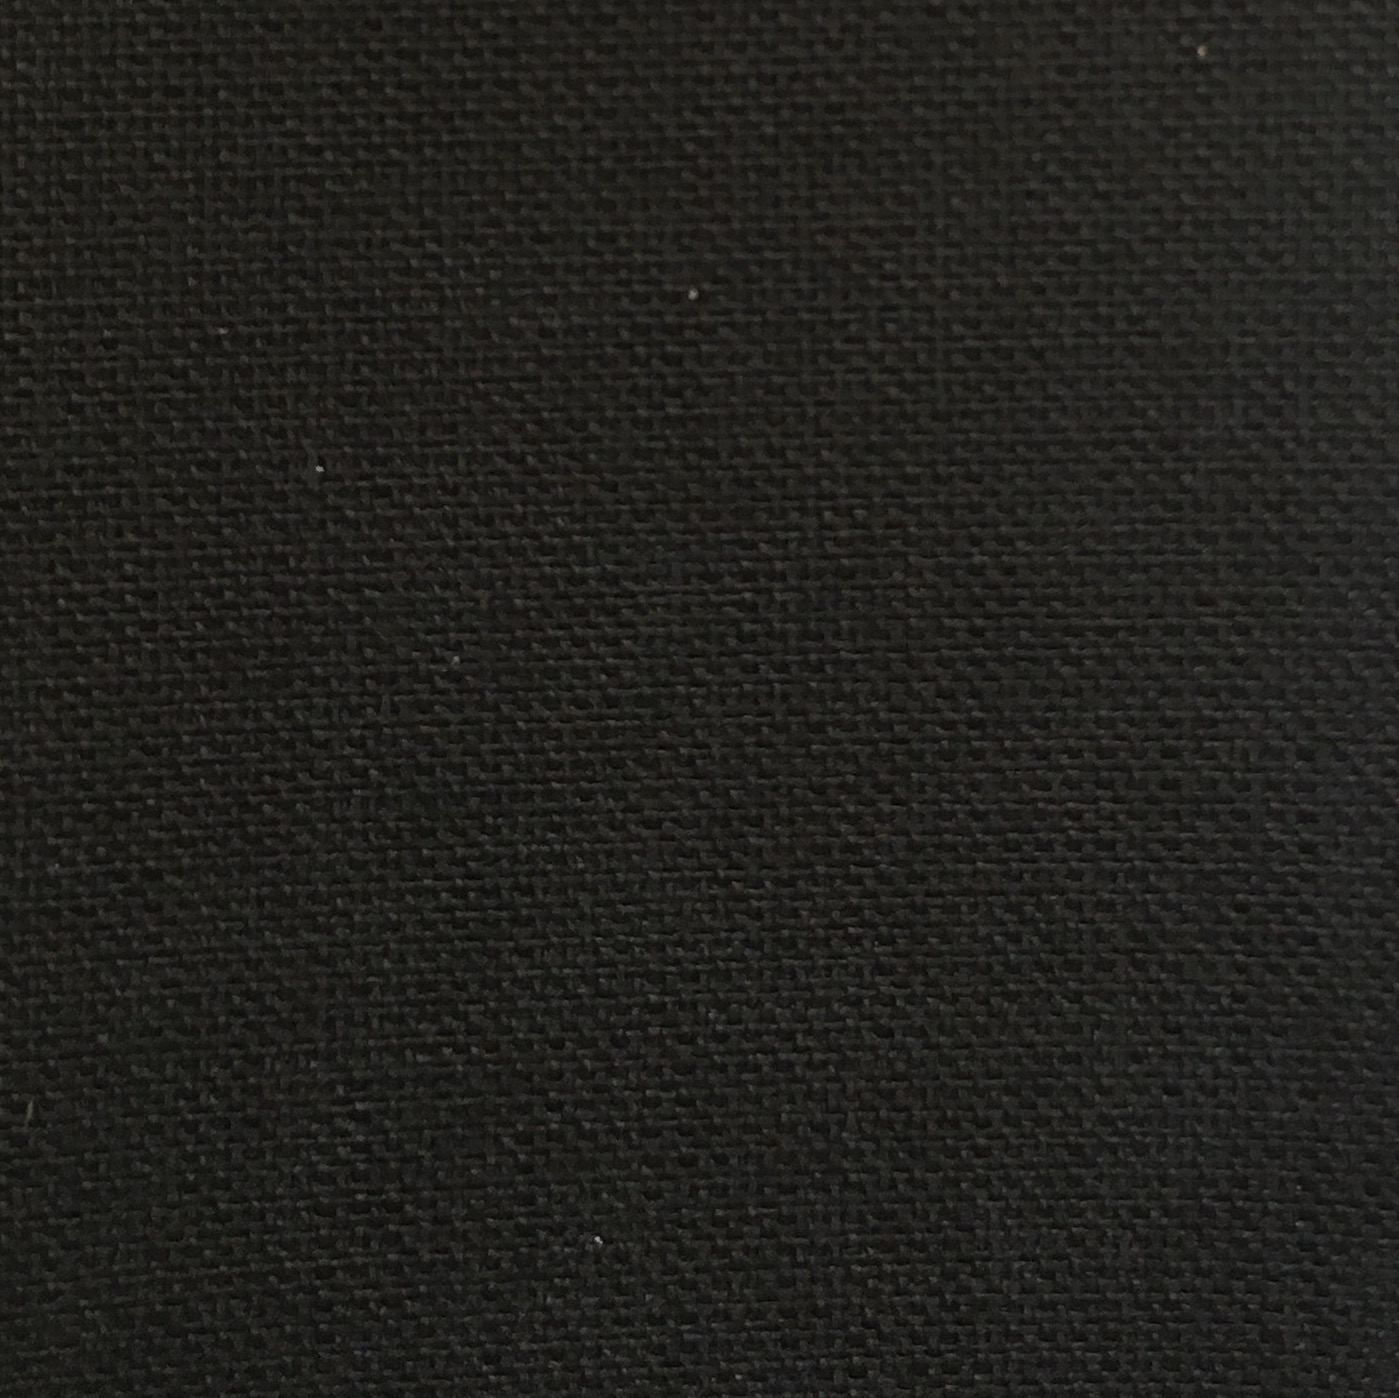 black colorado bookcloth